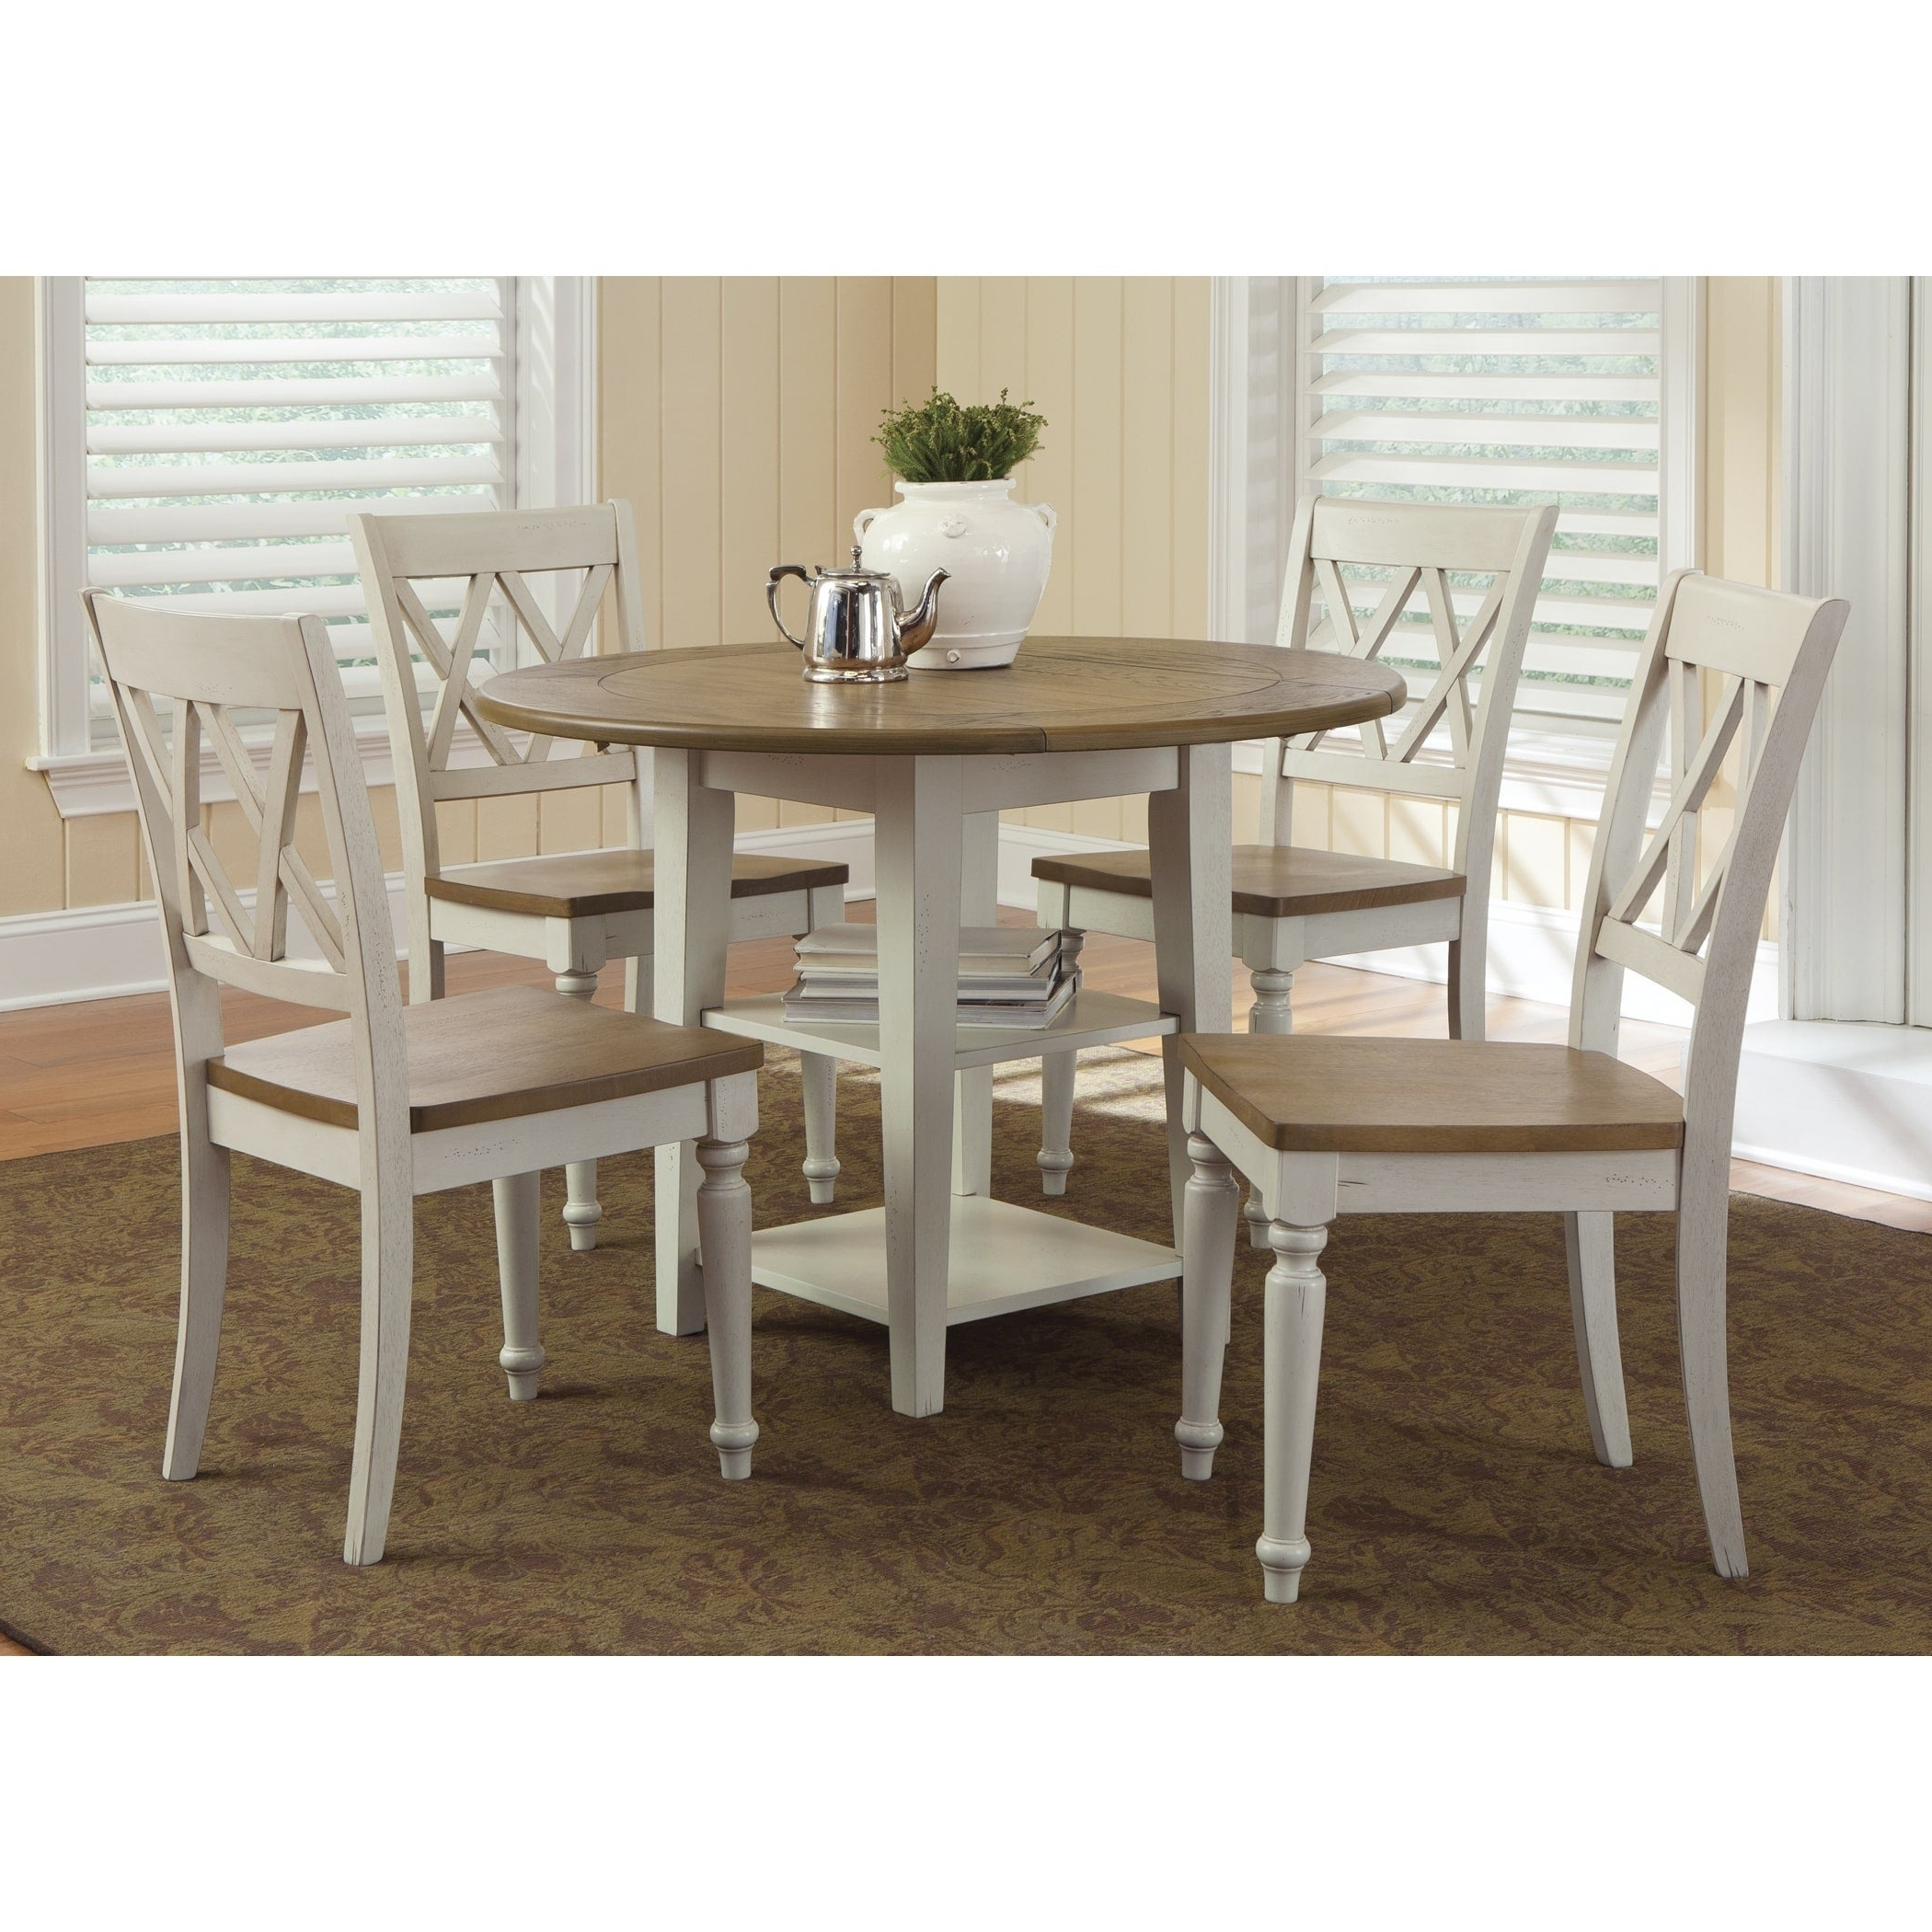 Latest Transitional 4 Seating Drop Leaf Casual Dining Tables Inside Al Fresco Two Tone Transitional Drop Leaf Leg Table – Antique White (View 9 of 30)